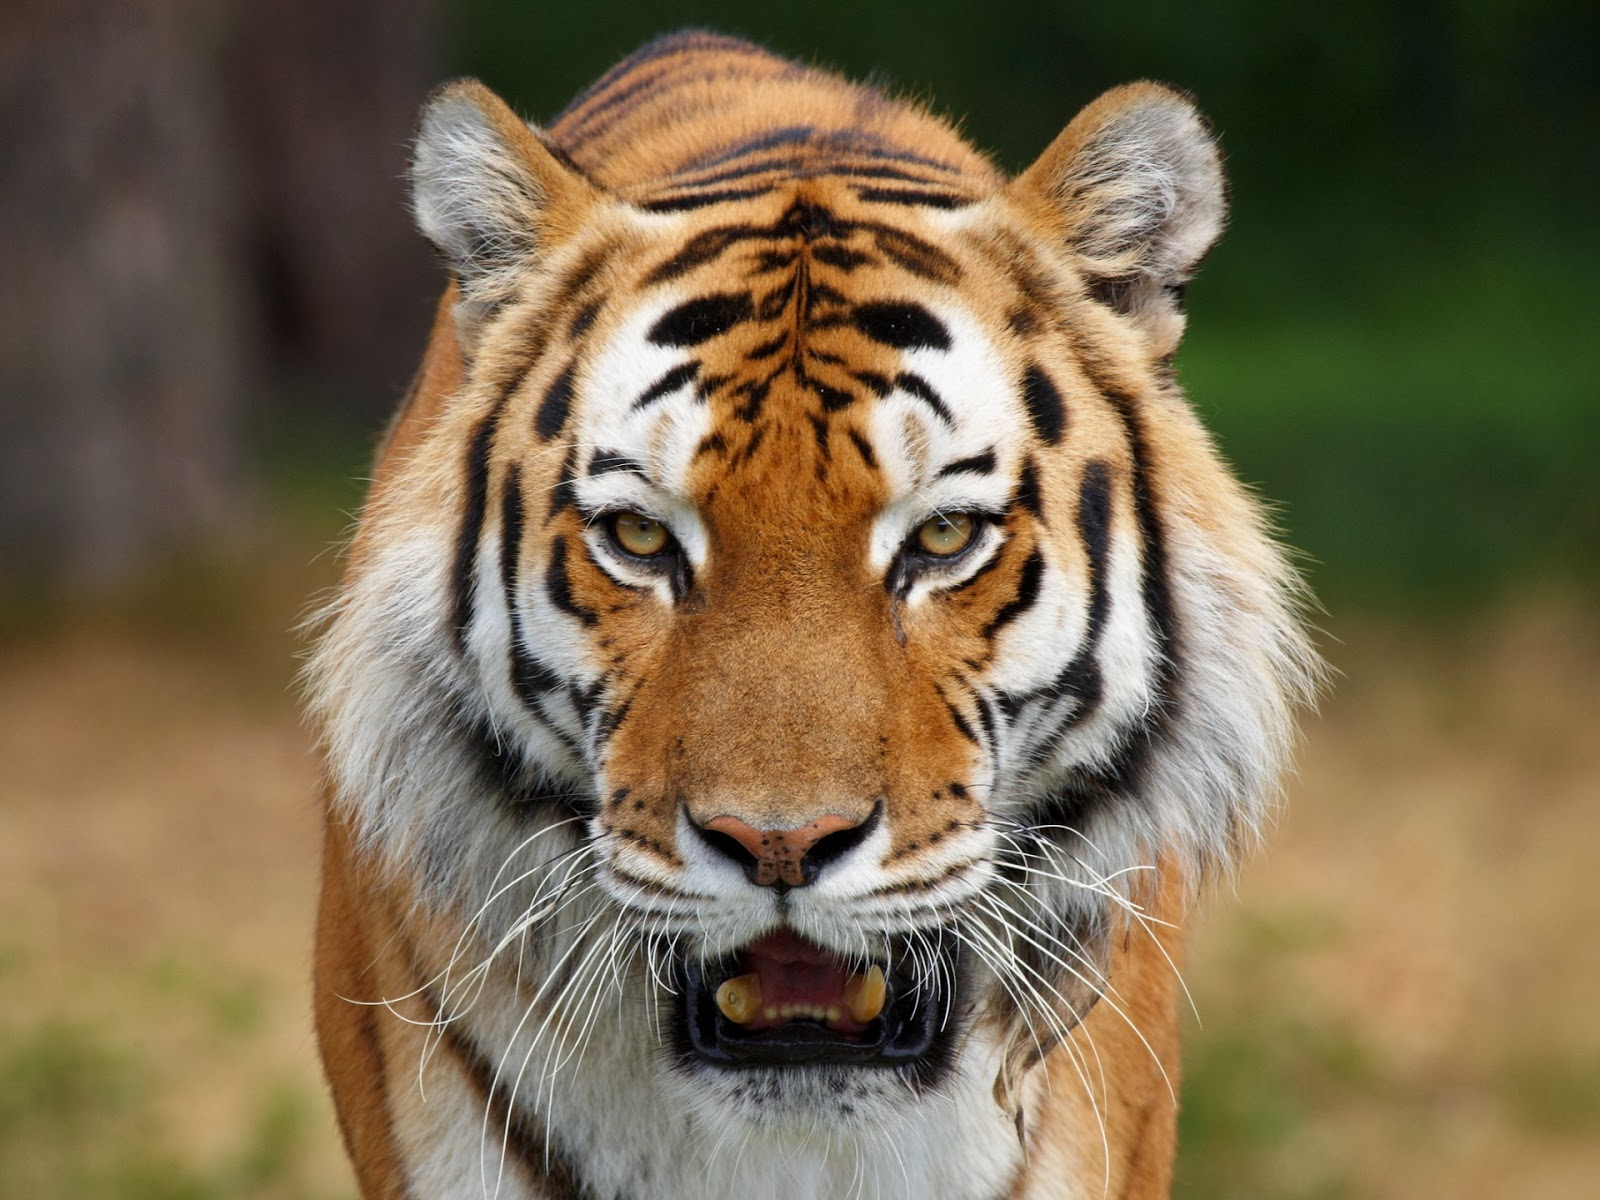 tiger face wallpapers ~ free hd desktop wallpapers download